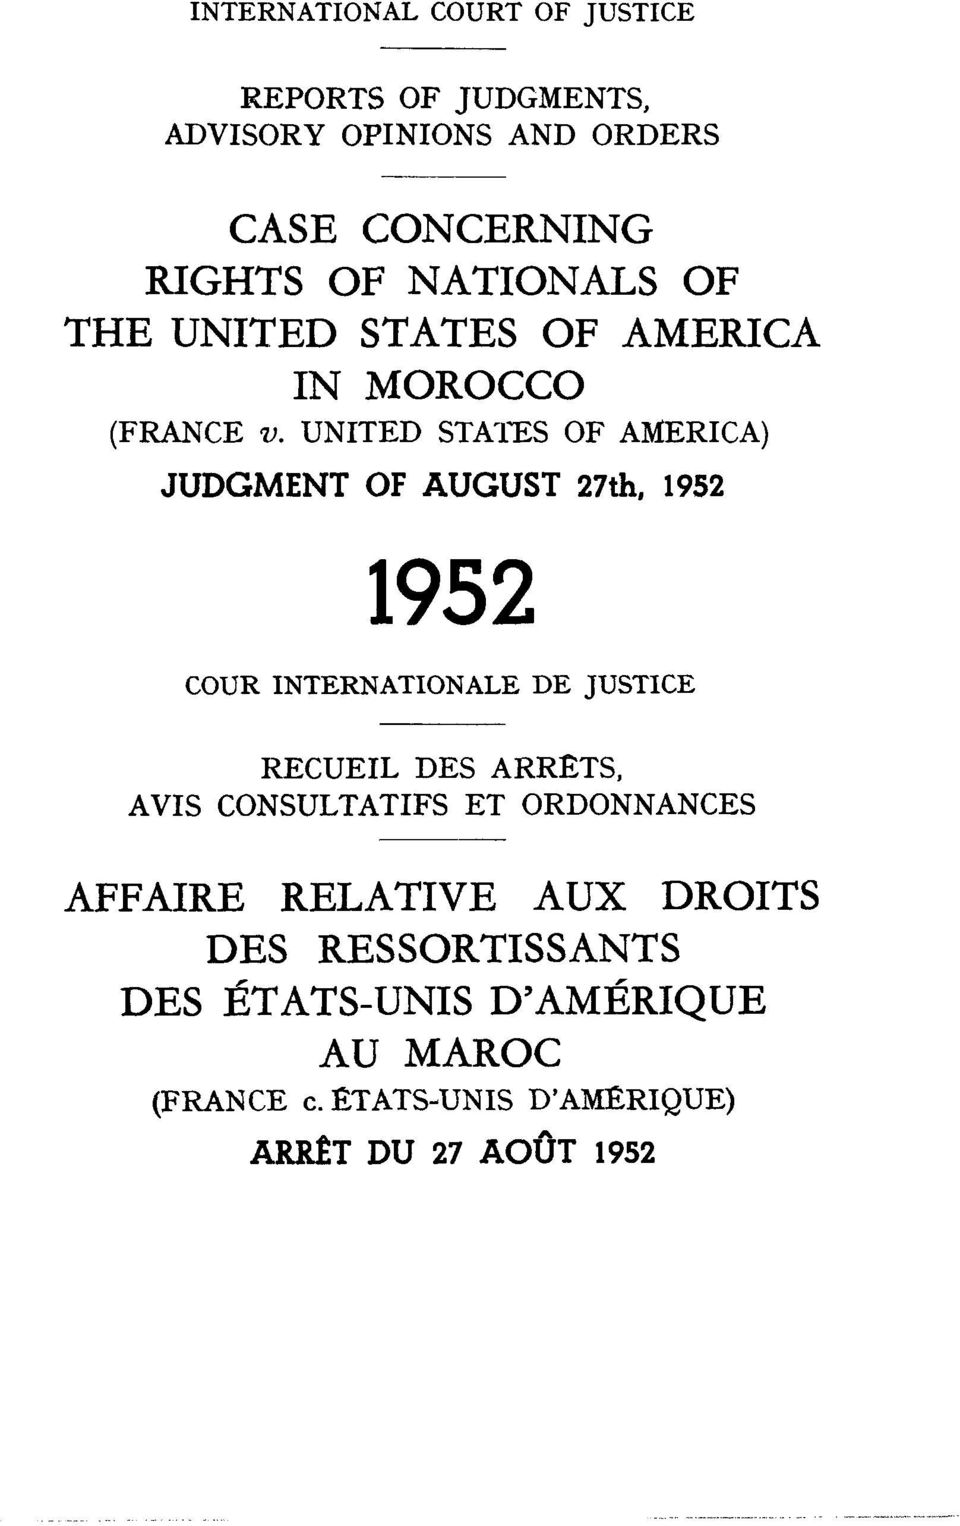 UNITED STATES OF AMERICA) JUDGMENT OF AUGUST 27th, 1952 COUR INTERNATIONALE DE JUSTICE RECUEIL DES ARRETS, AVIS